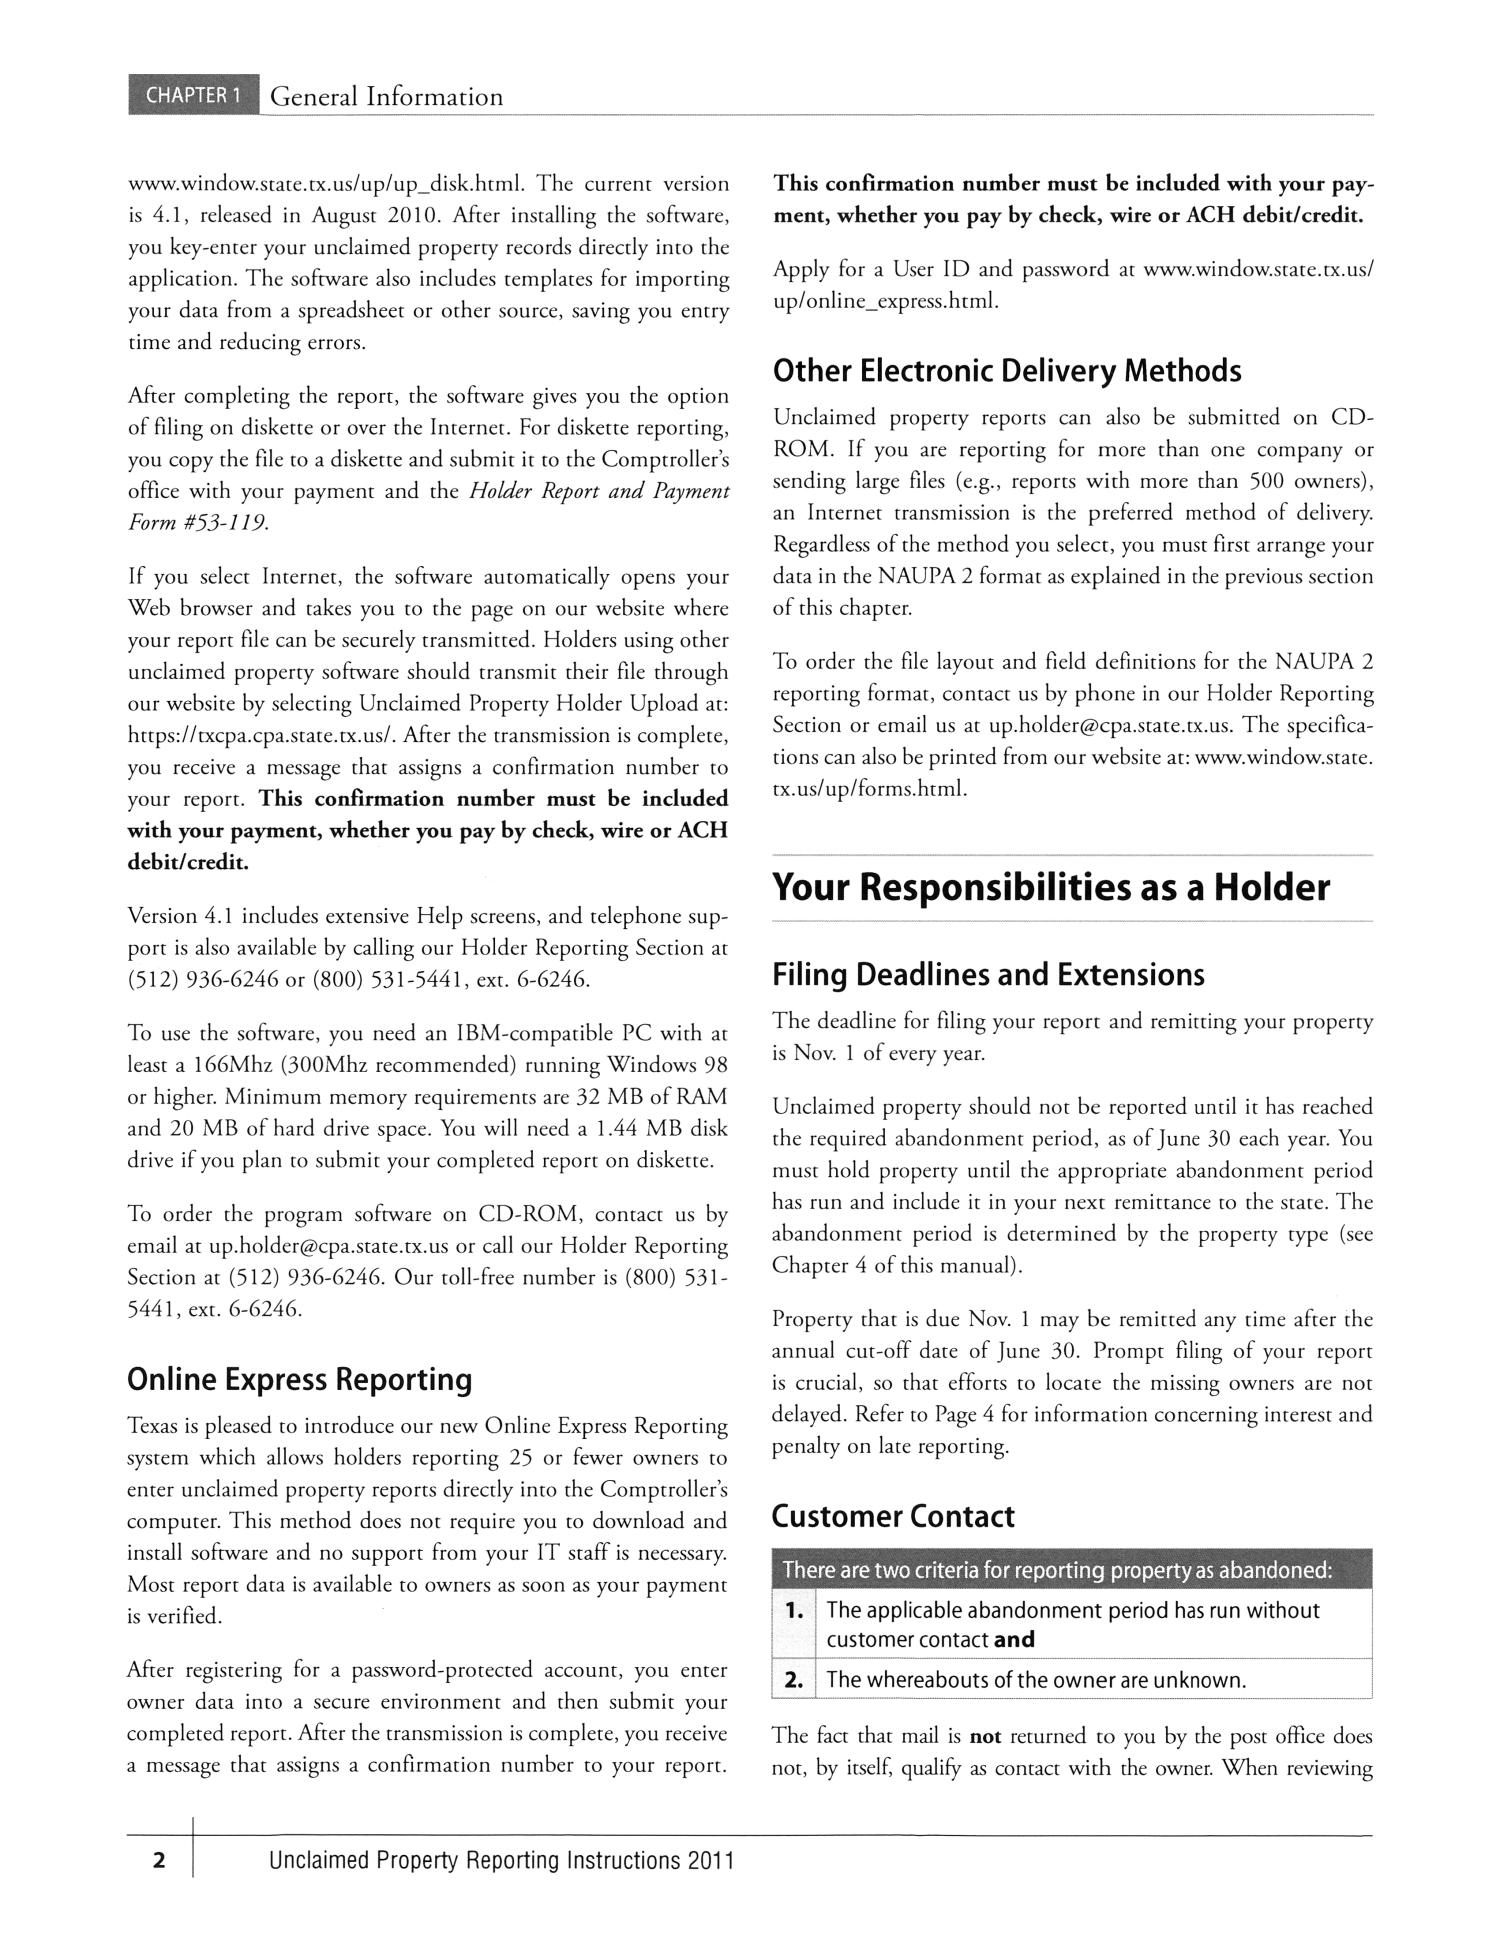 Unclaimed Property Reporting Instructions 2011 Page 2 The